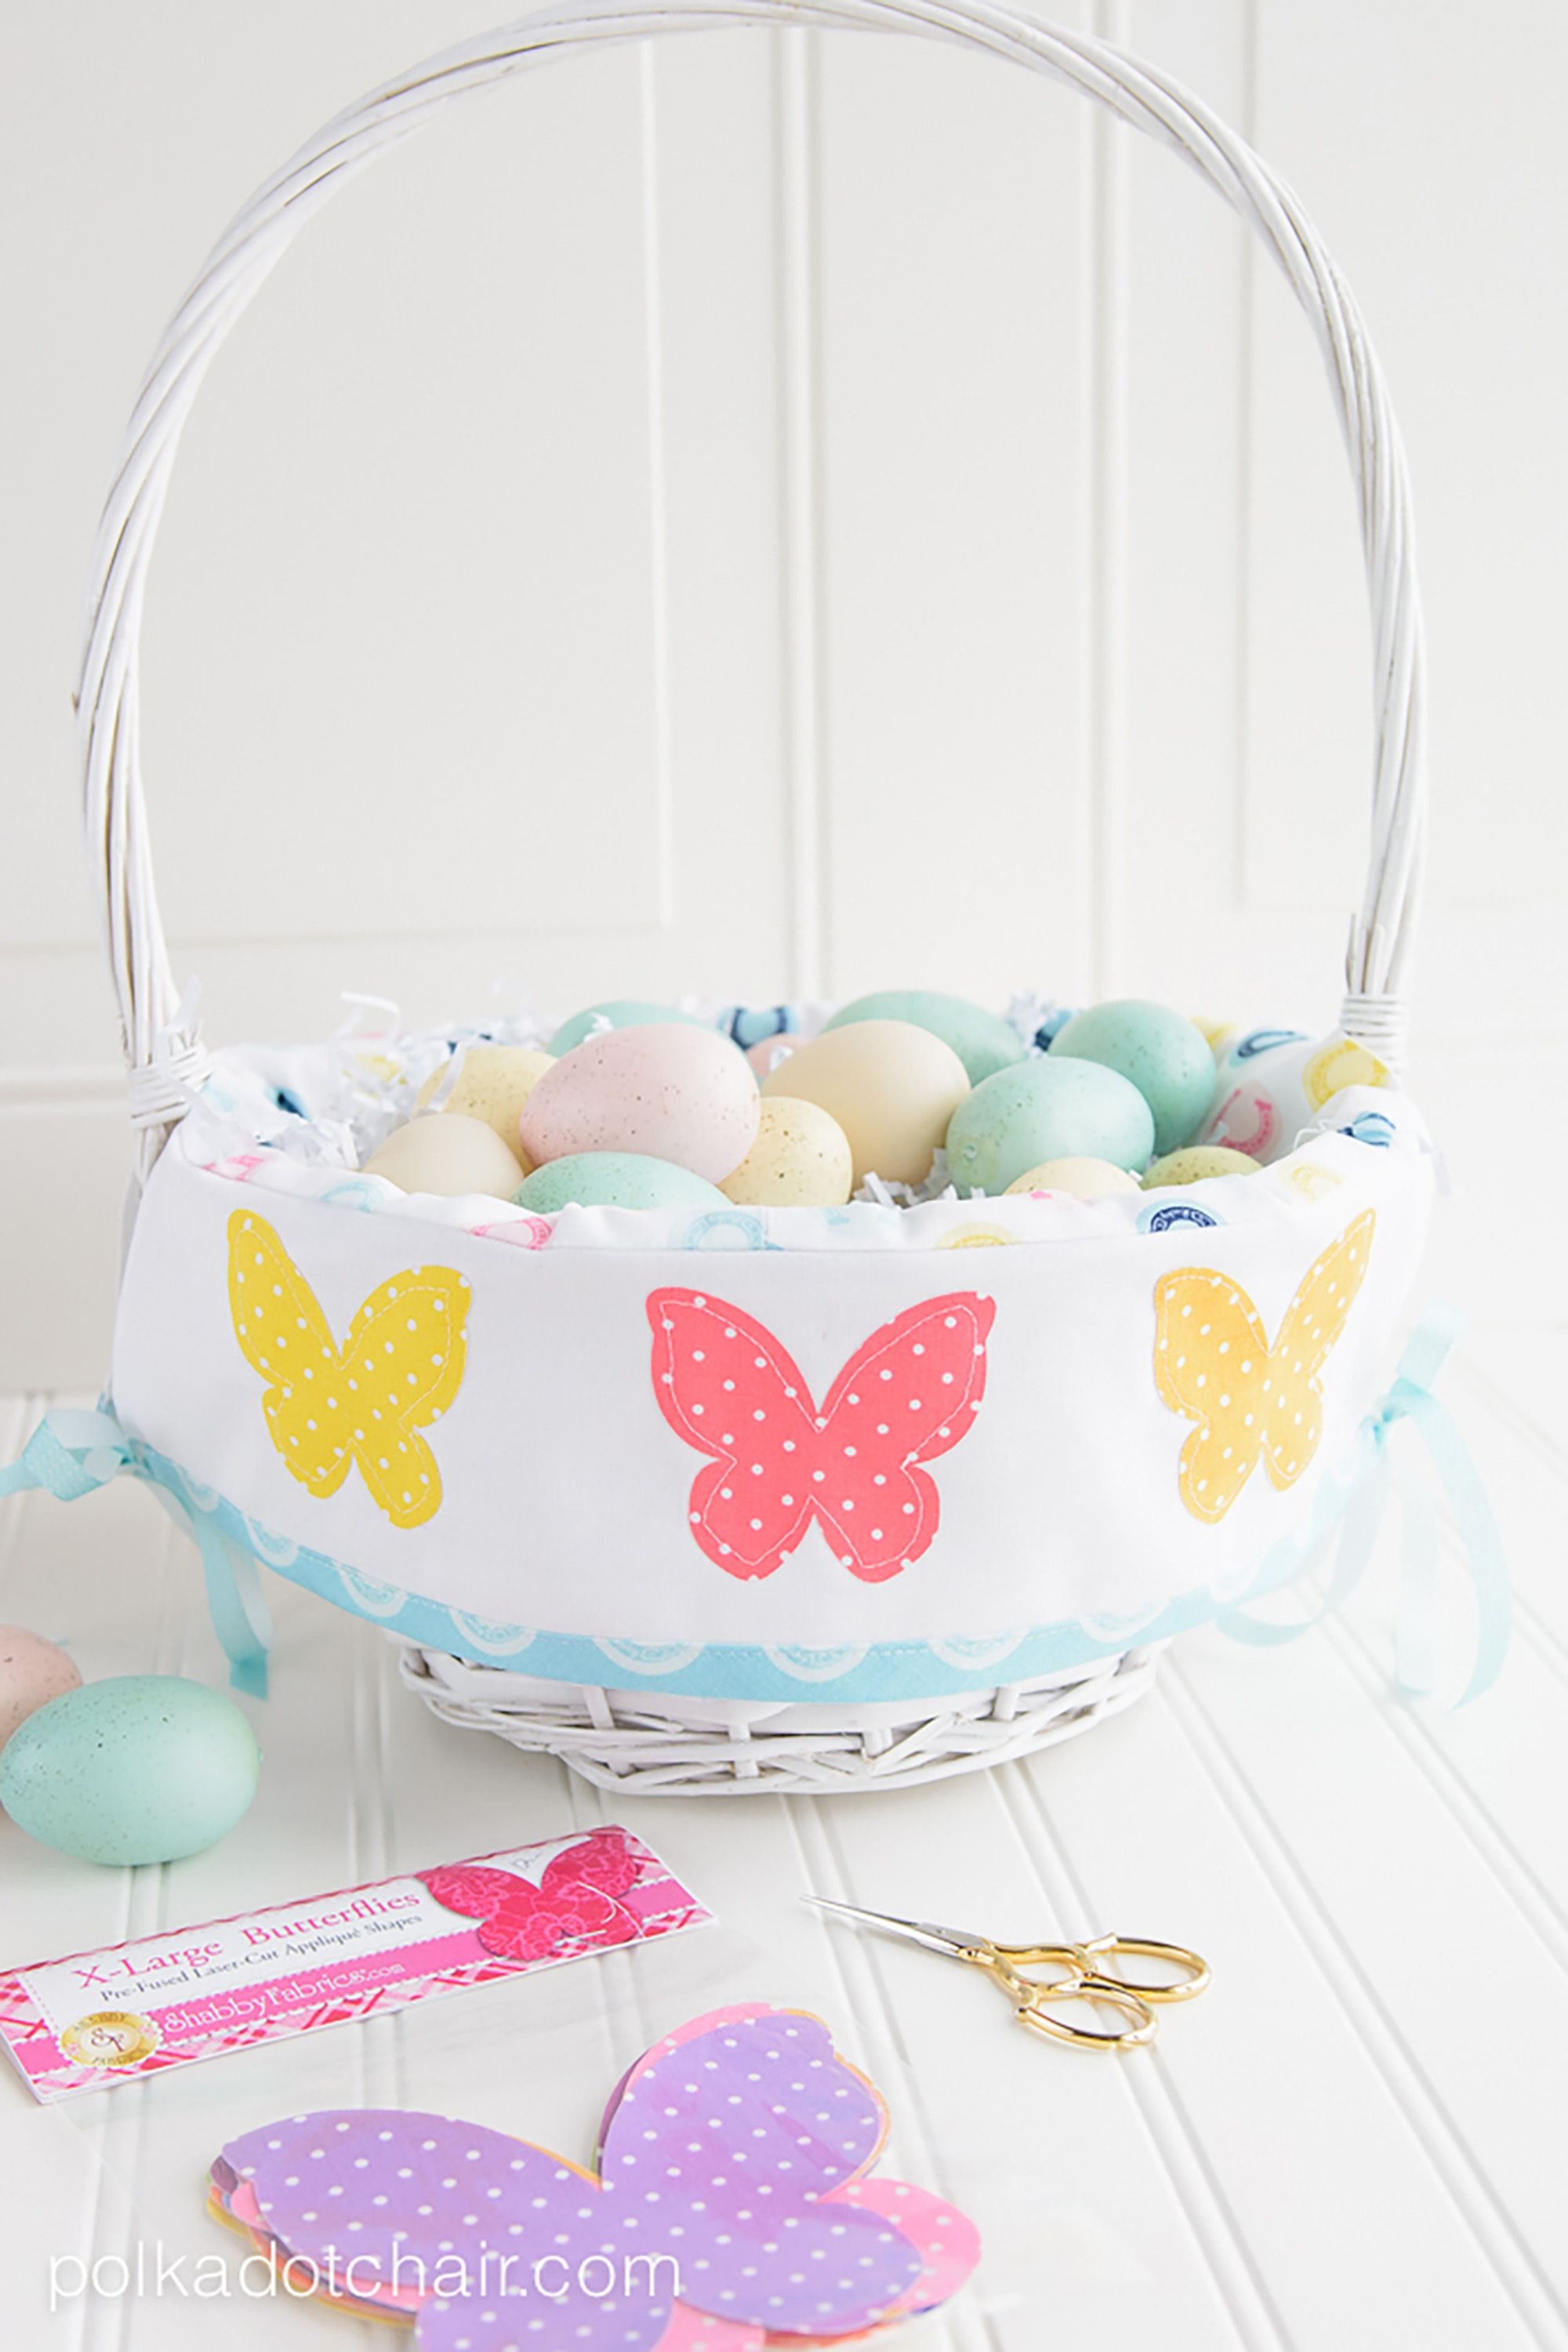 21 cute homemade easter basket ideas - easter gifts for kids and adults